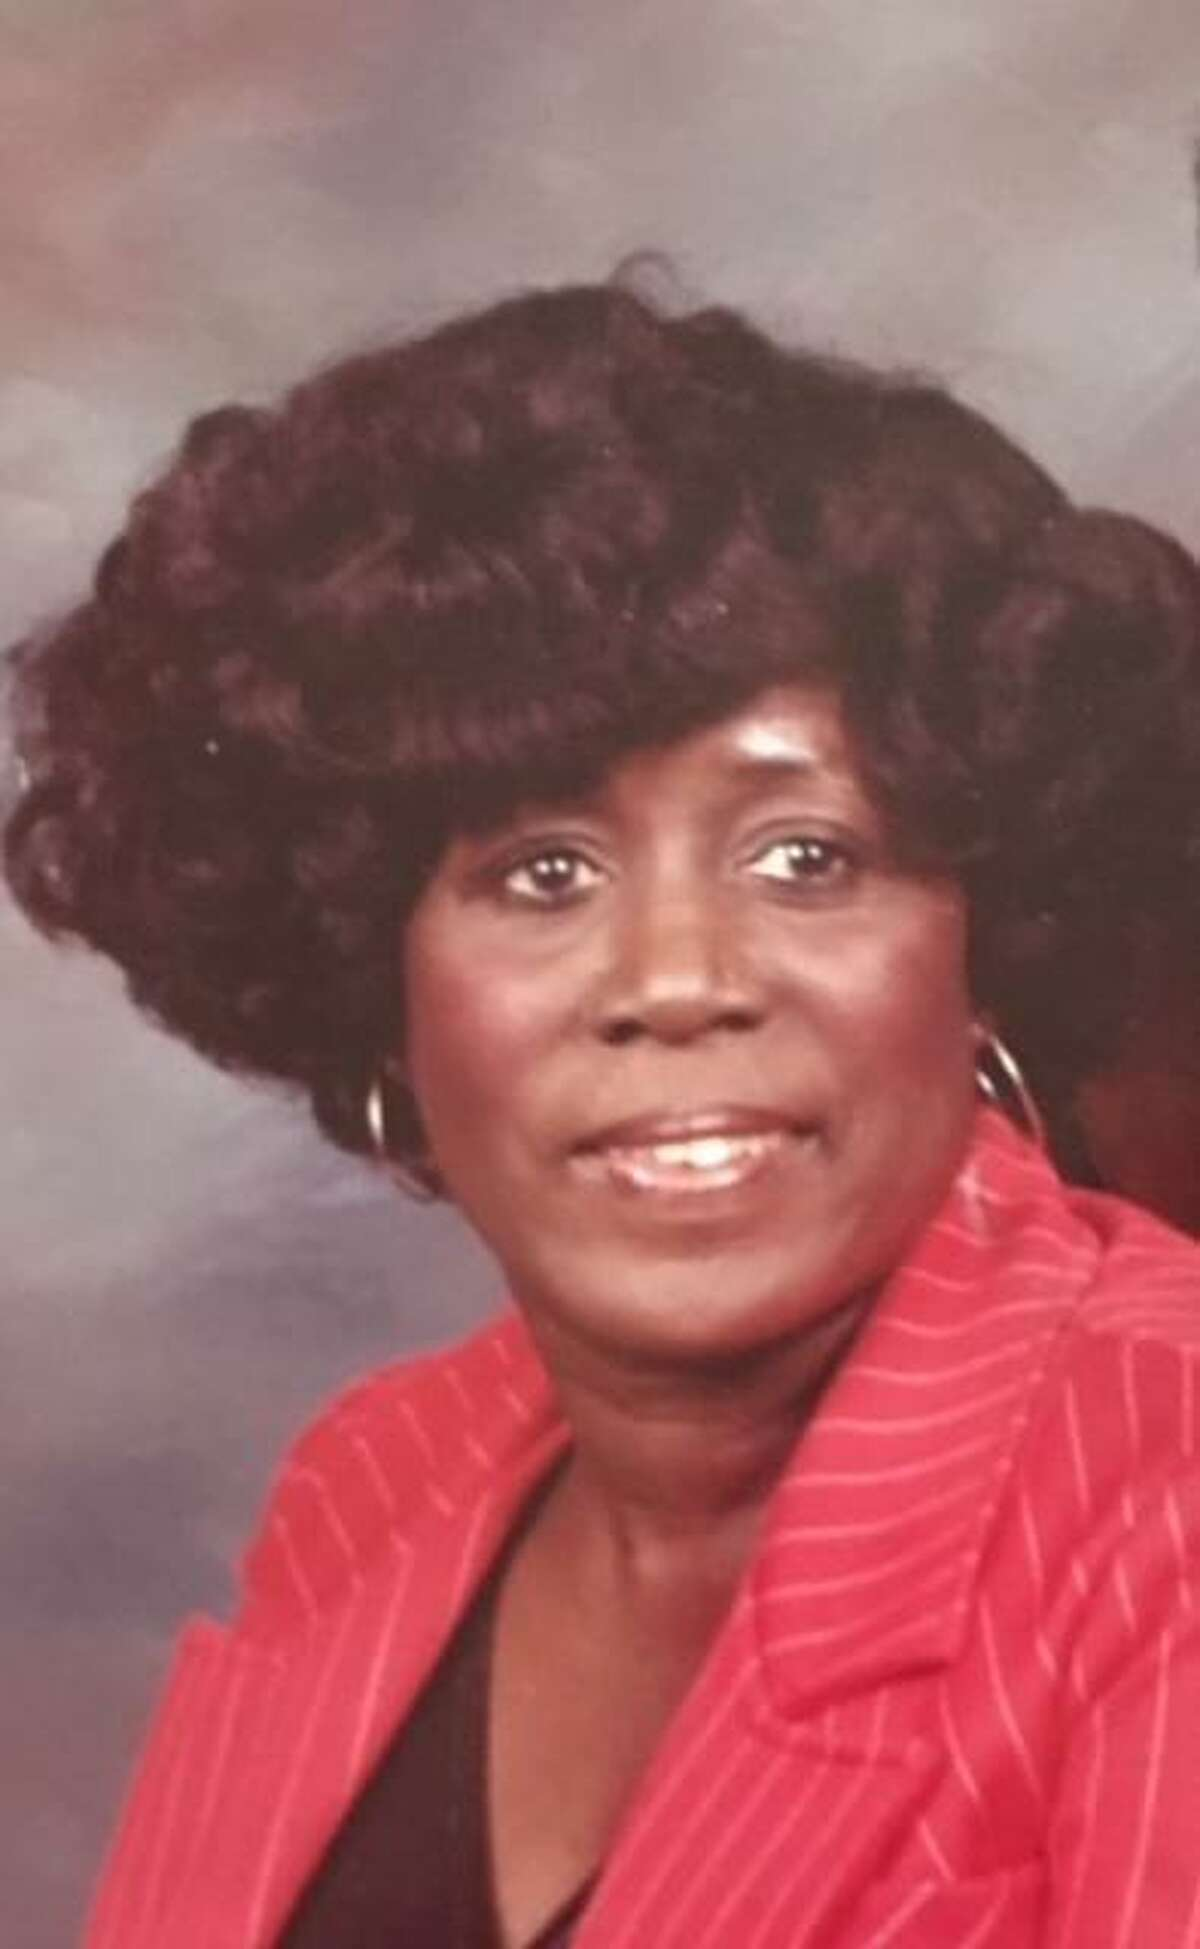 In 2005, the residents of District 6 recognized Thelma L. Jackson?'s work in the community by naming an Acme Park sports pavilion after her.